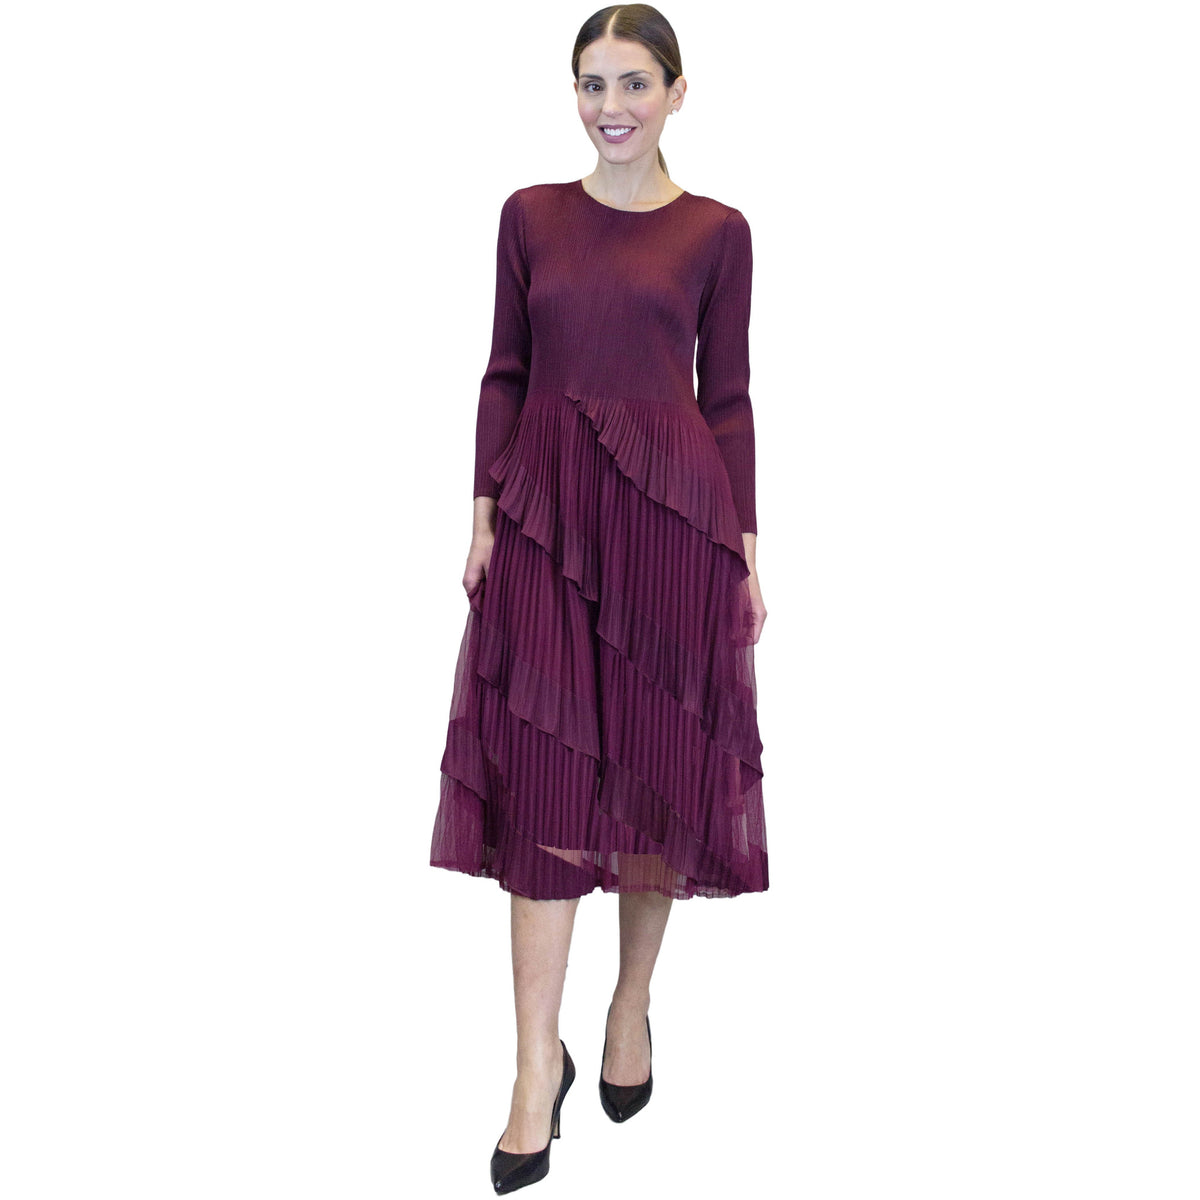 3/4 Sleeve Multi Layer Dress - Merlot